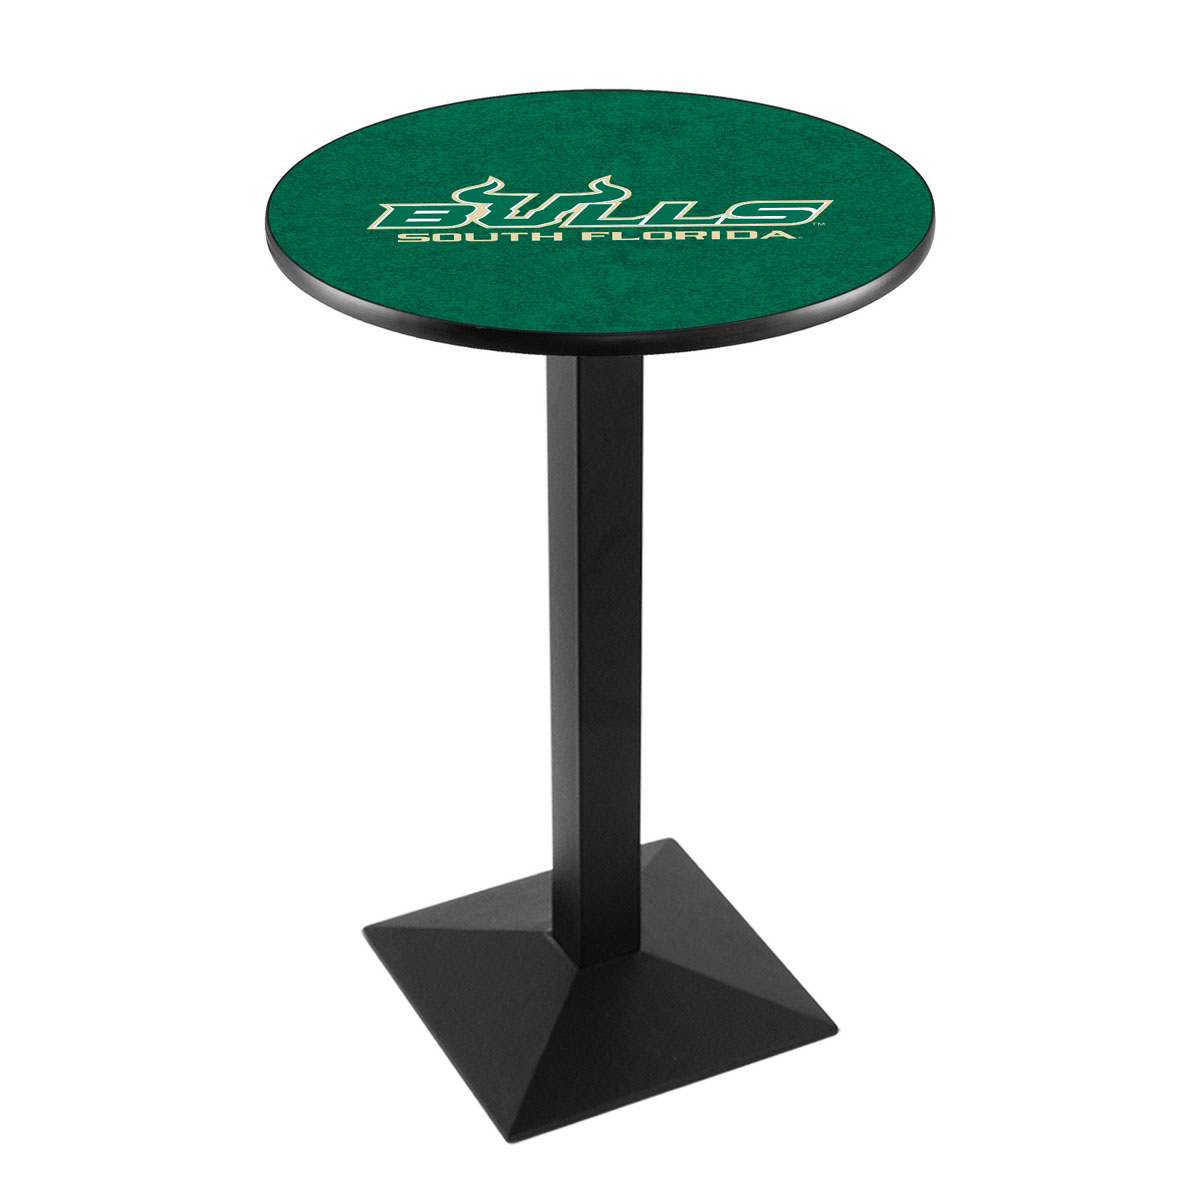 Information about University South Florida Logo Pub Bar Table Square Stand Product Photo